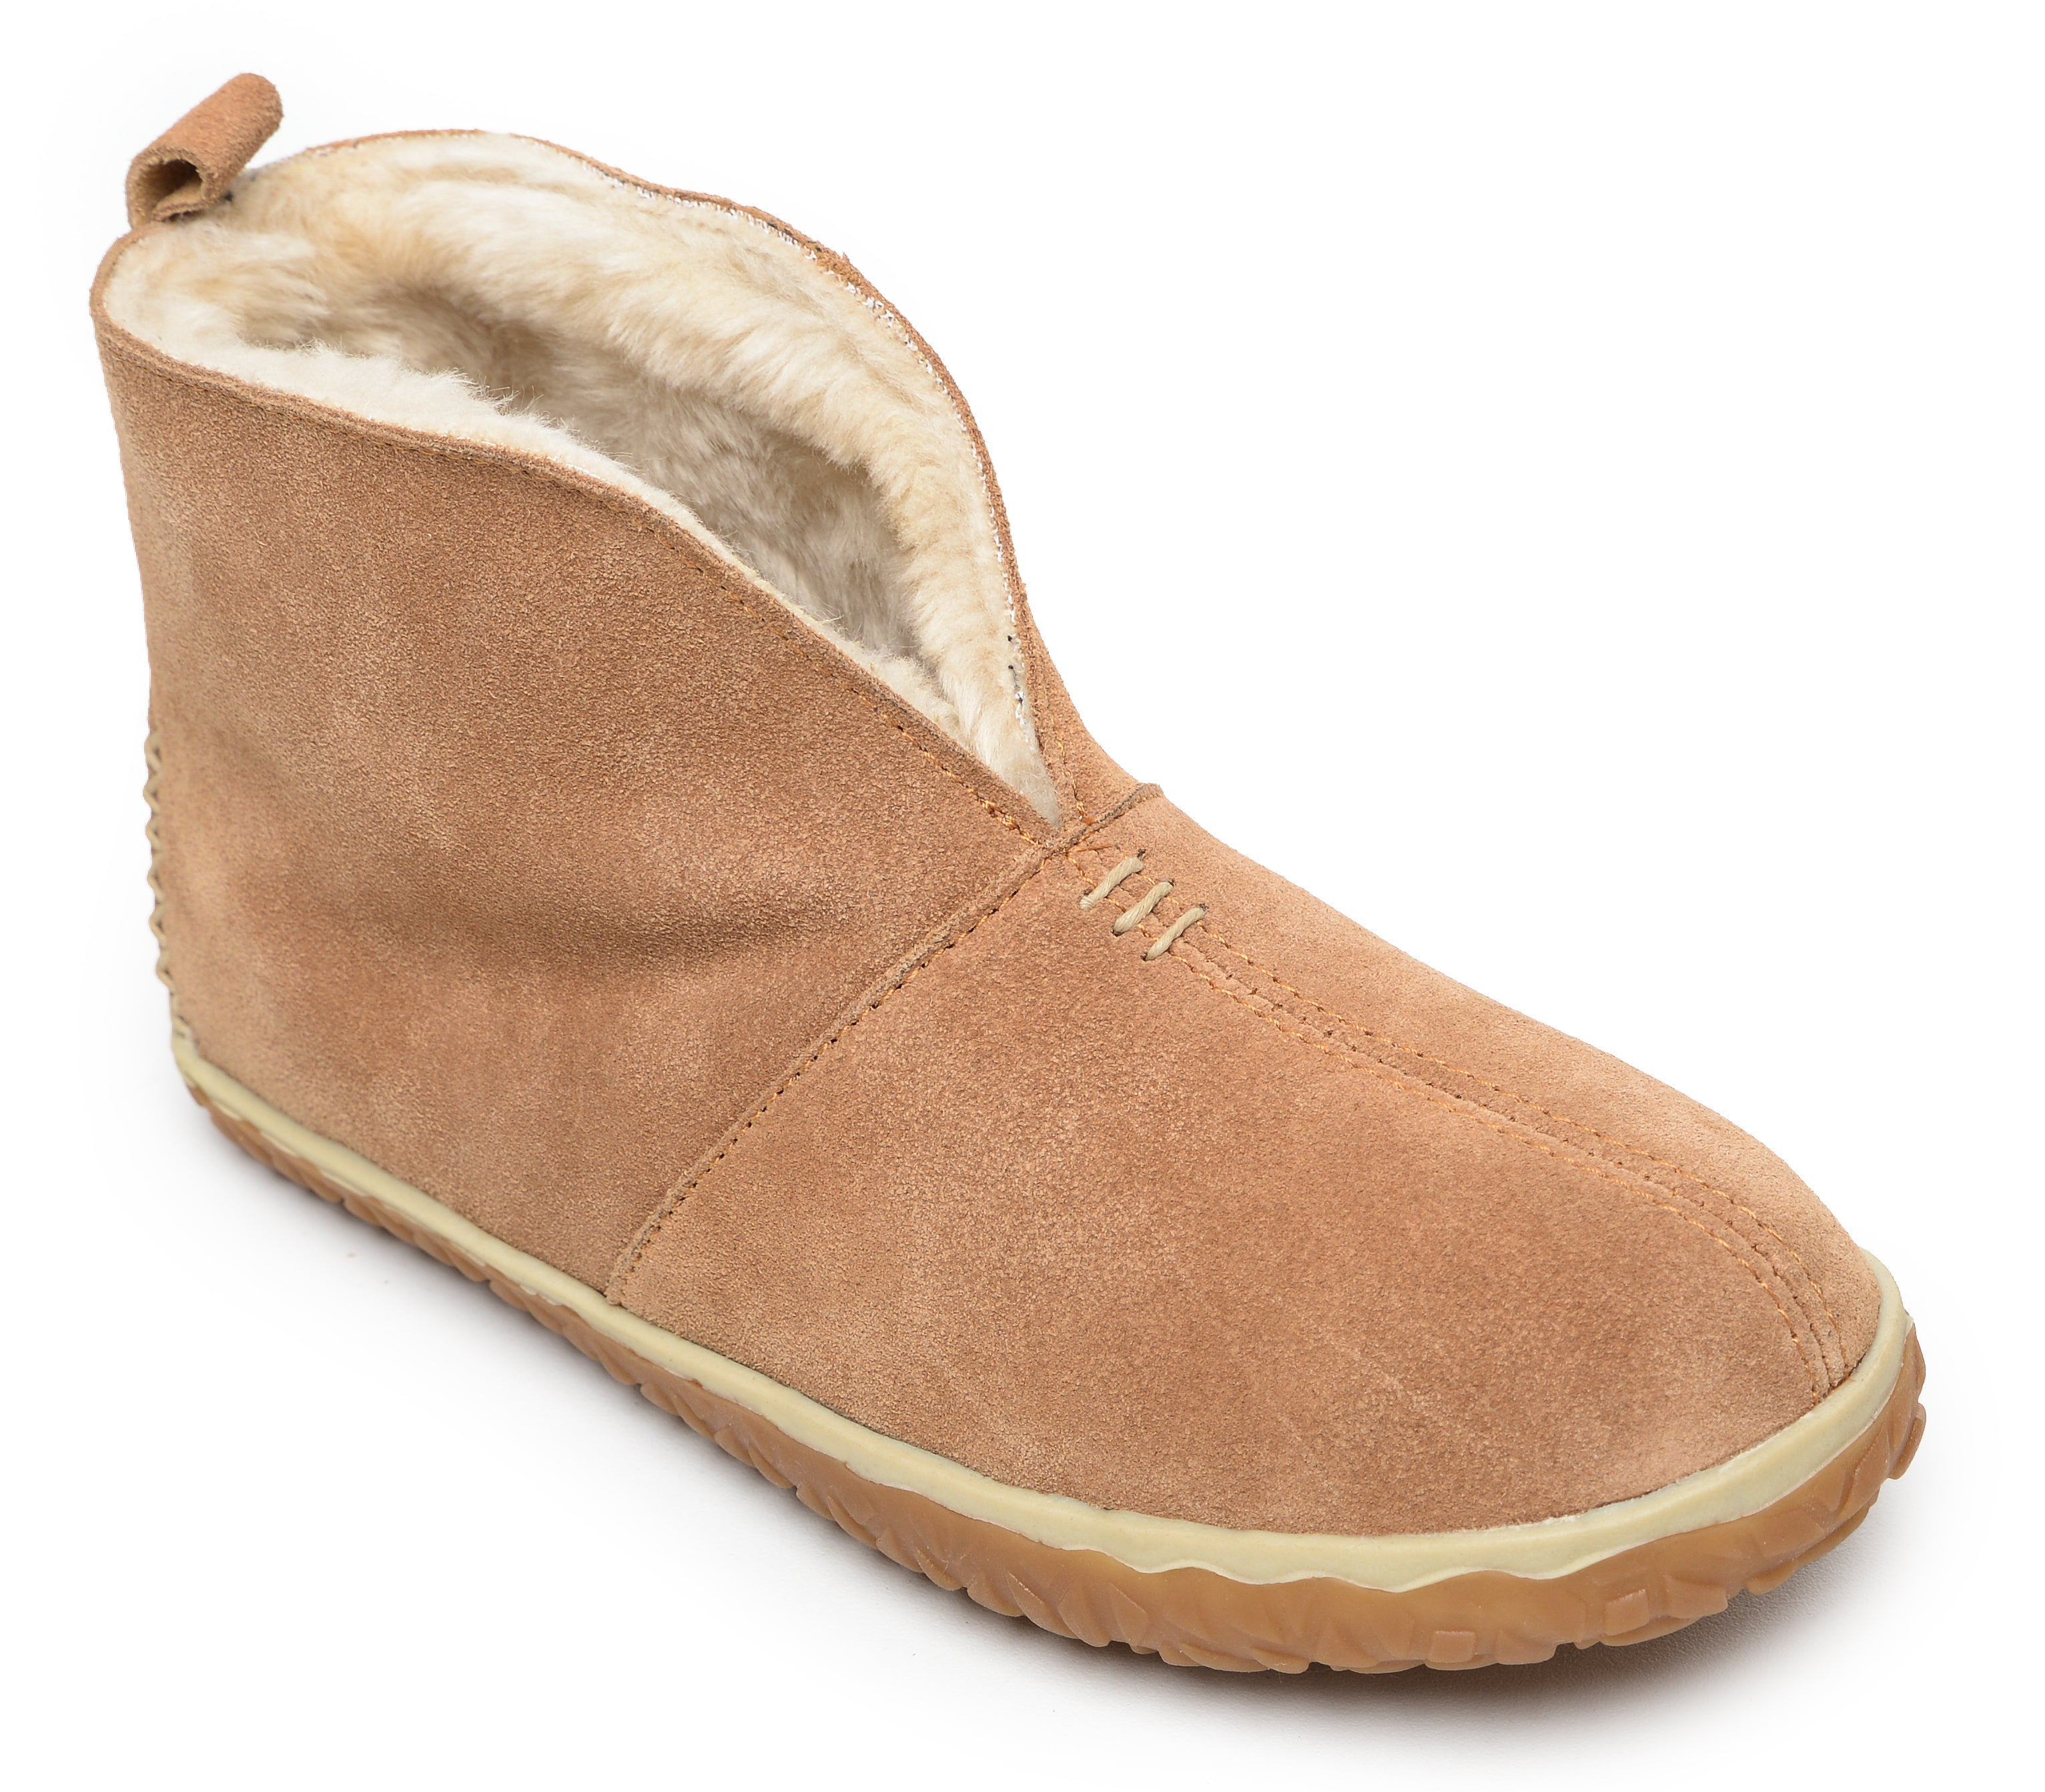 'Minnetonka' 40111 - Women's Tucson Slipper - Cinnamon